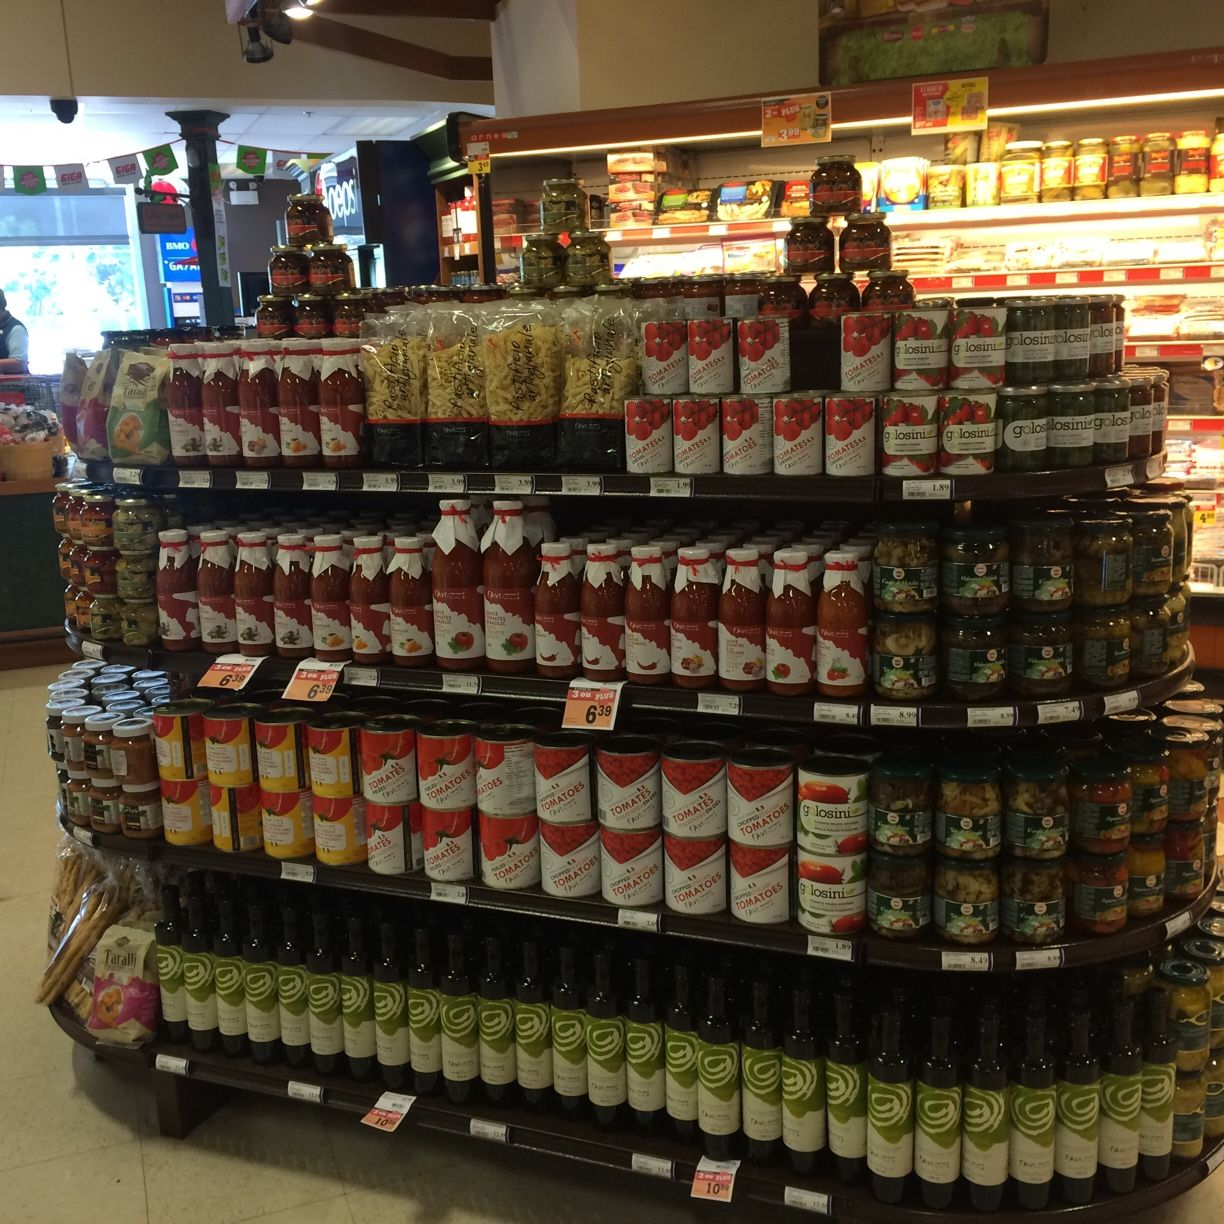 Favuzzi Oil, tomatoes and sauces display